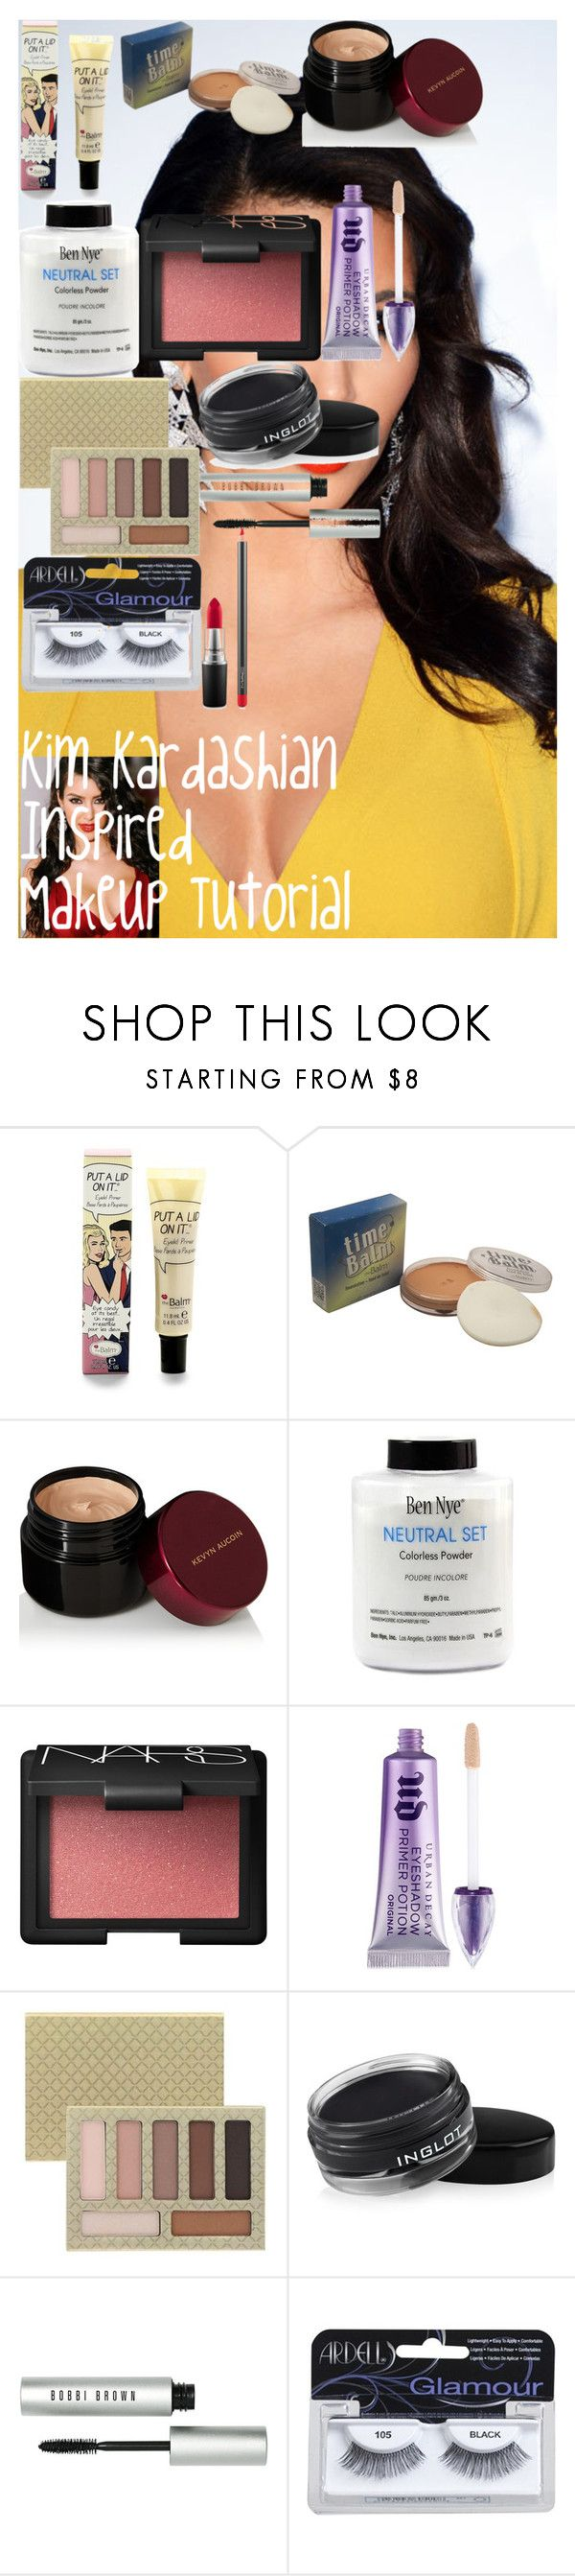 Kim Kardashian Inspired Makeup Tutorial ♡ by oroartyellie on Polyvore featuring beauty, LORAC, Kevyn Aucoin, Bobbi Brown Cosmetics, MAC Cosmetics, NARS Cosmetics, Urban Decay, TheBalm, Inglot and Ardell